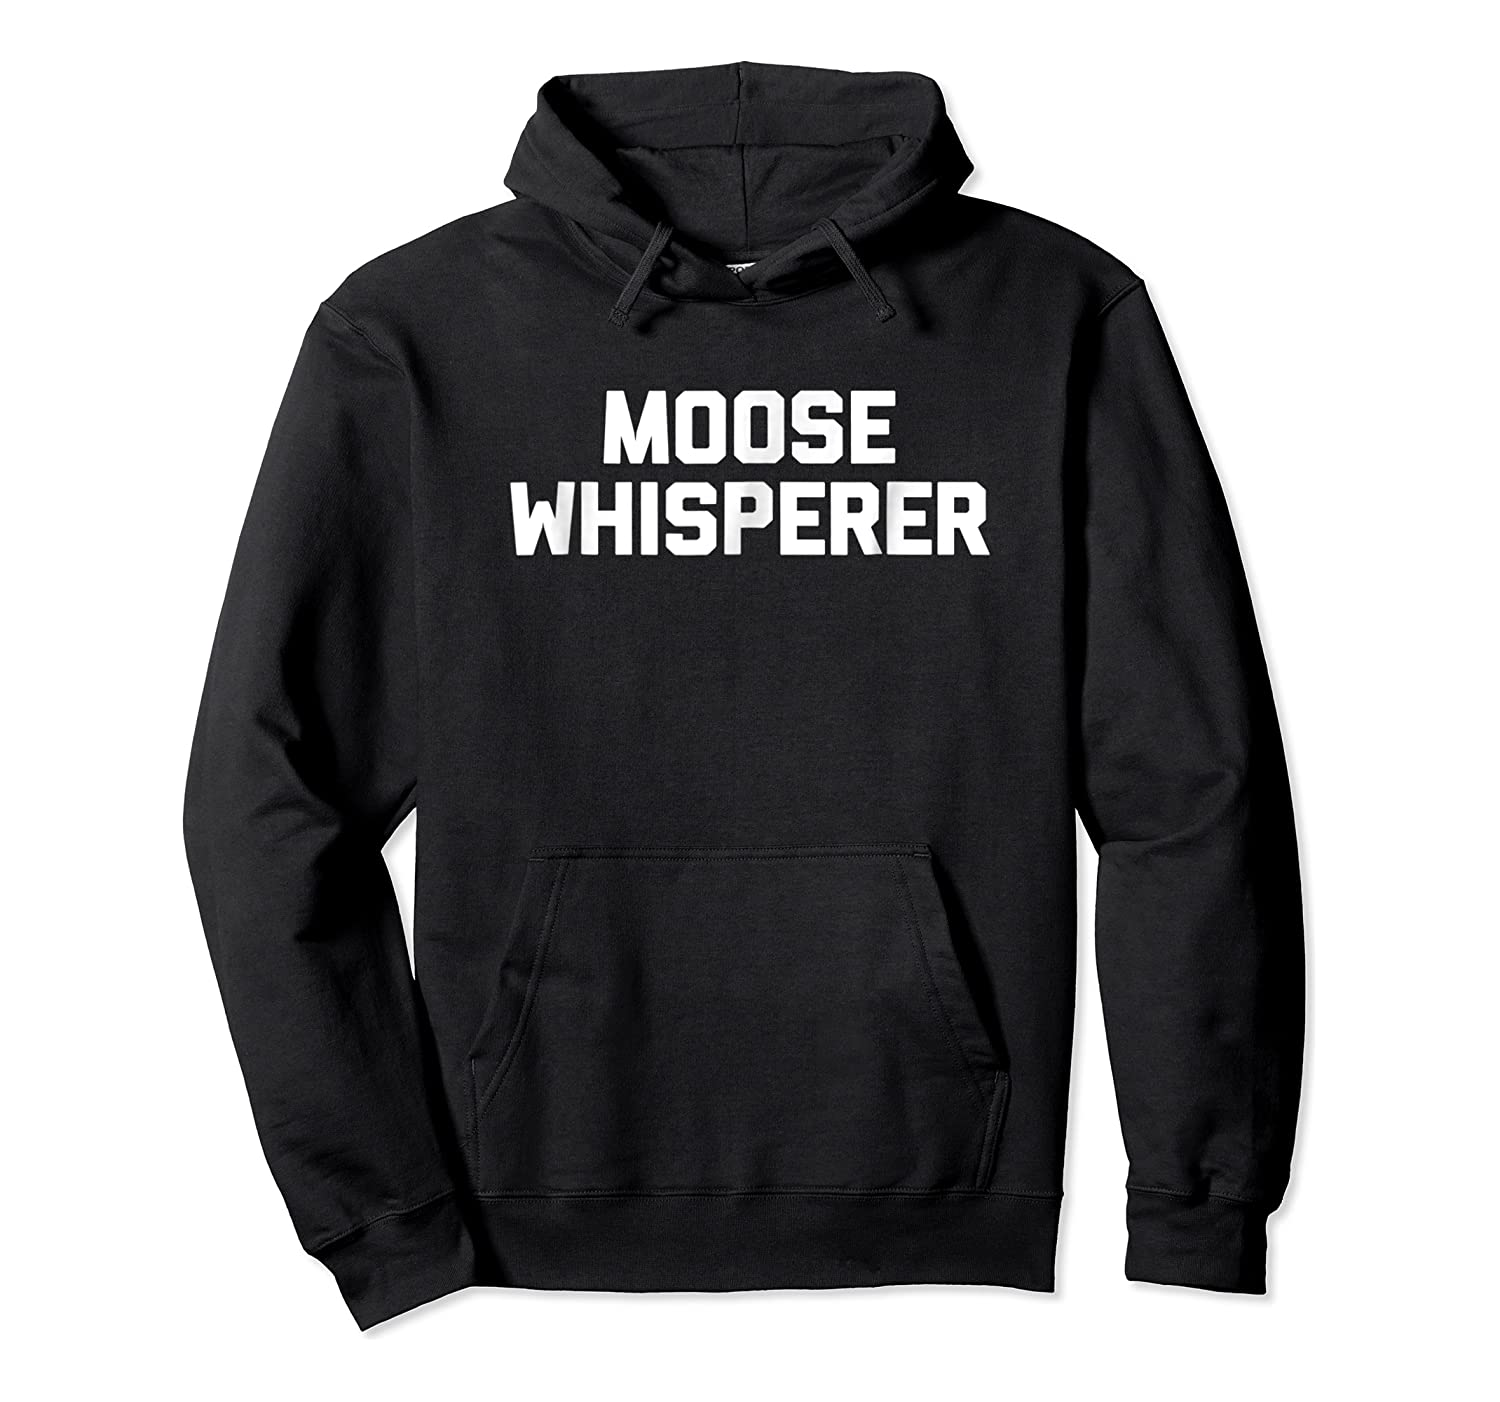 Moose Whisperer Funny Saying Sarcastic Novelty Humor Shirts Unisex Pullover Hoodie